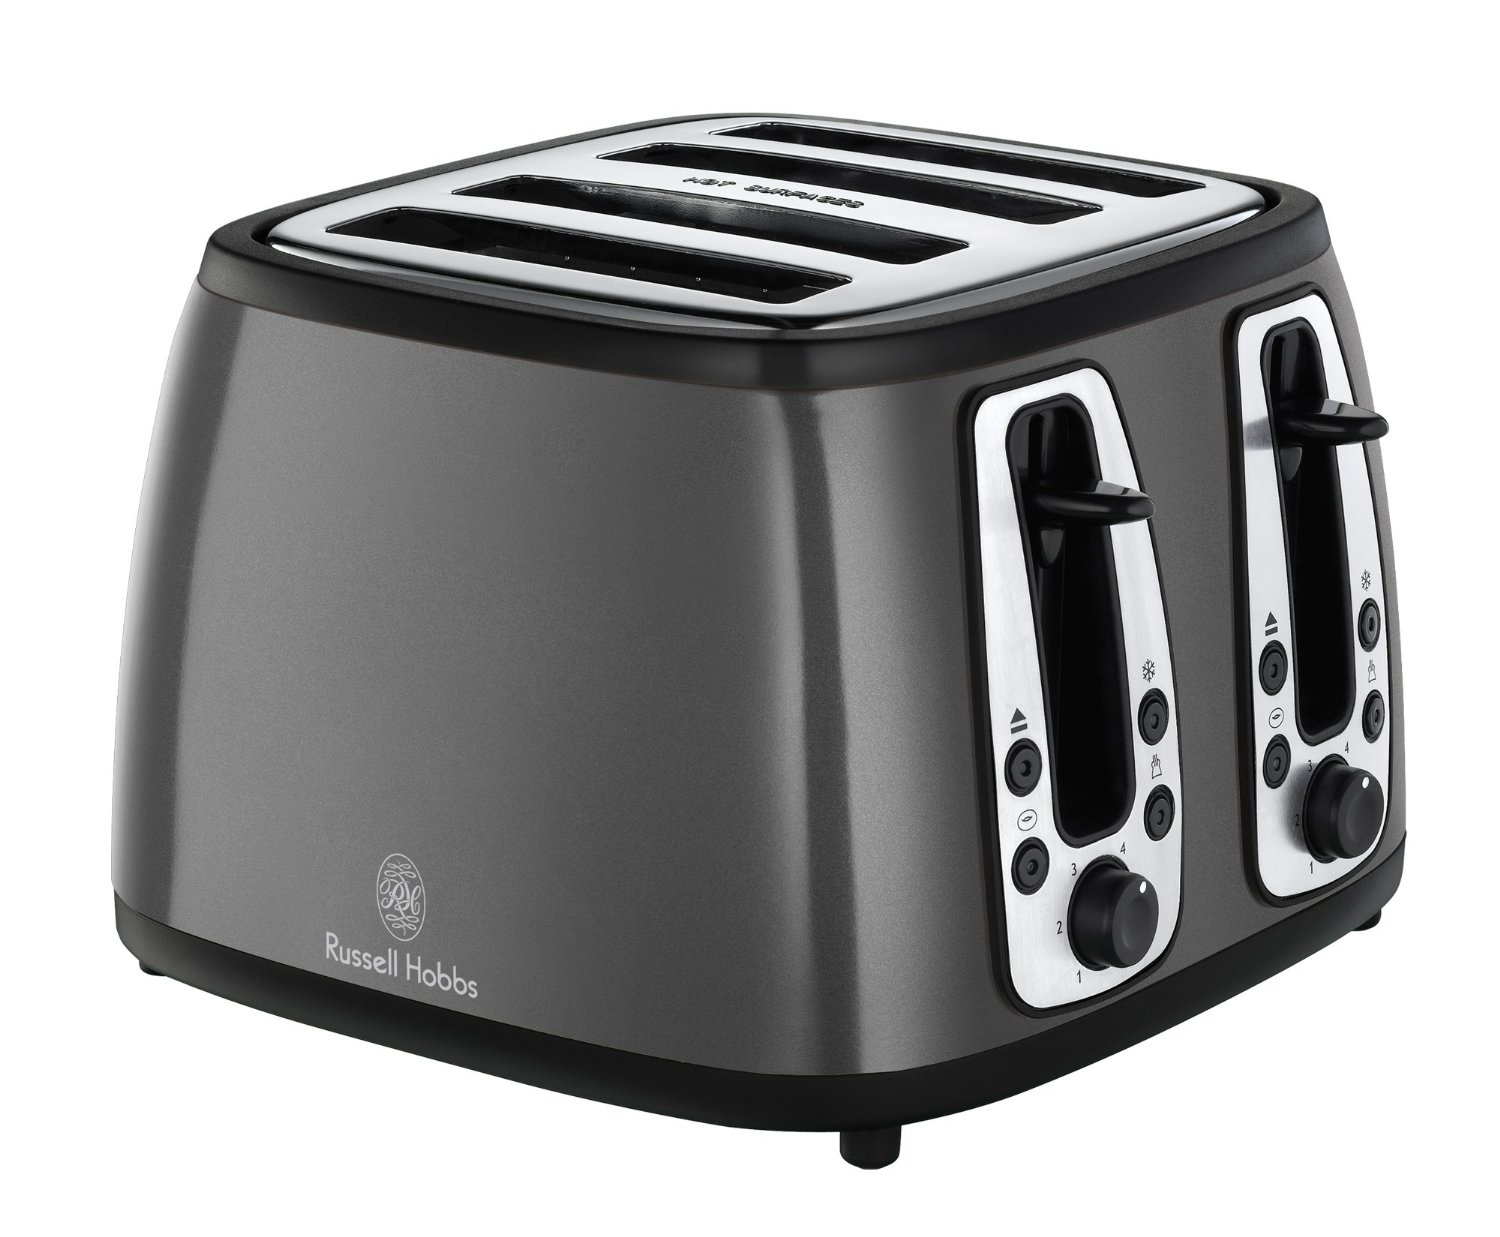 russell hobbs 19163 heritage 4 slice toaster metallic graphite grey new ebay. Black Bedroom Furniture Sets. Home Design Ideas